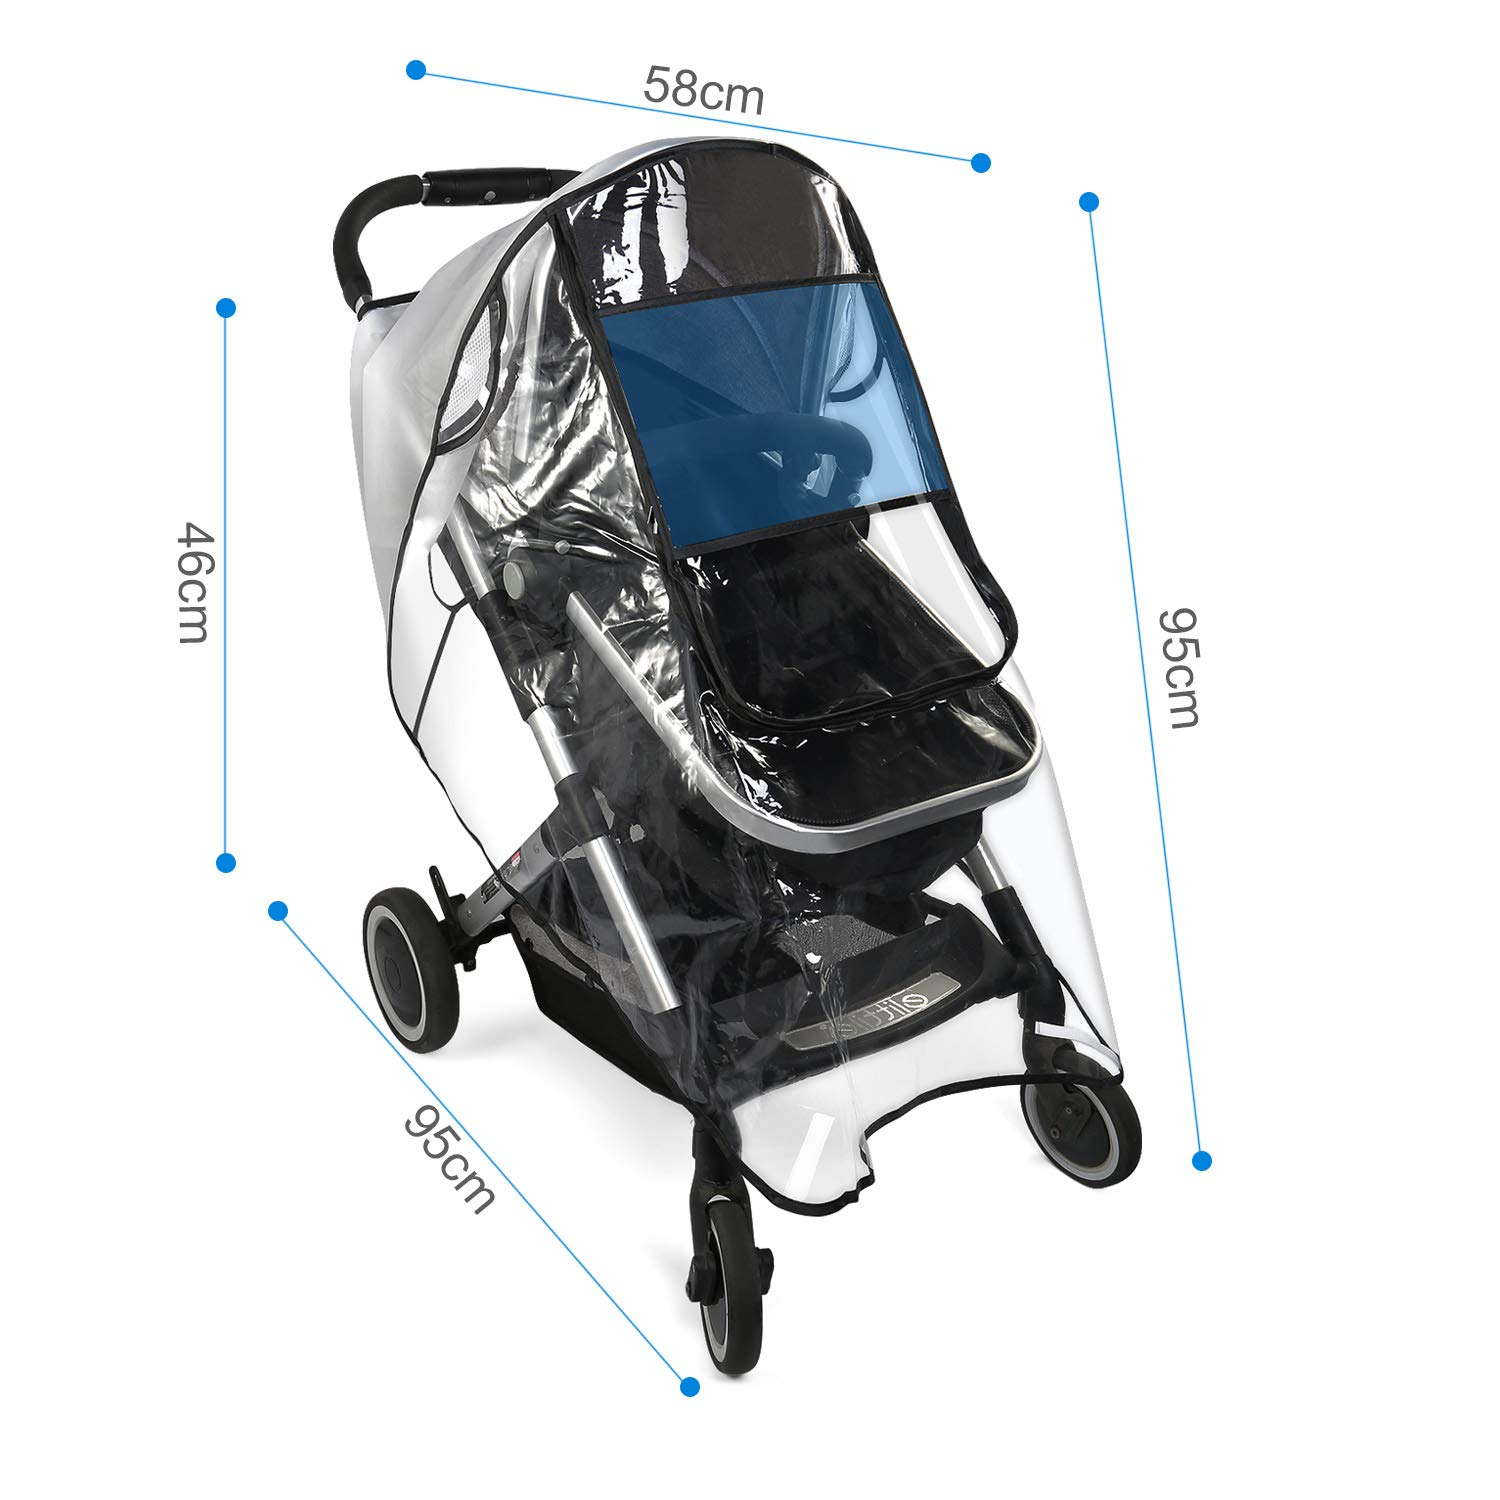 BelleStyle Universal Rain Cover for Pushchair Stroller Buggy Pram Waterproof Windproof Dust Snow Weather Transparent Shield Travel Outdoor Rain Cover with Carrying Bag and Baby Stroller Mosquito Net